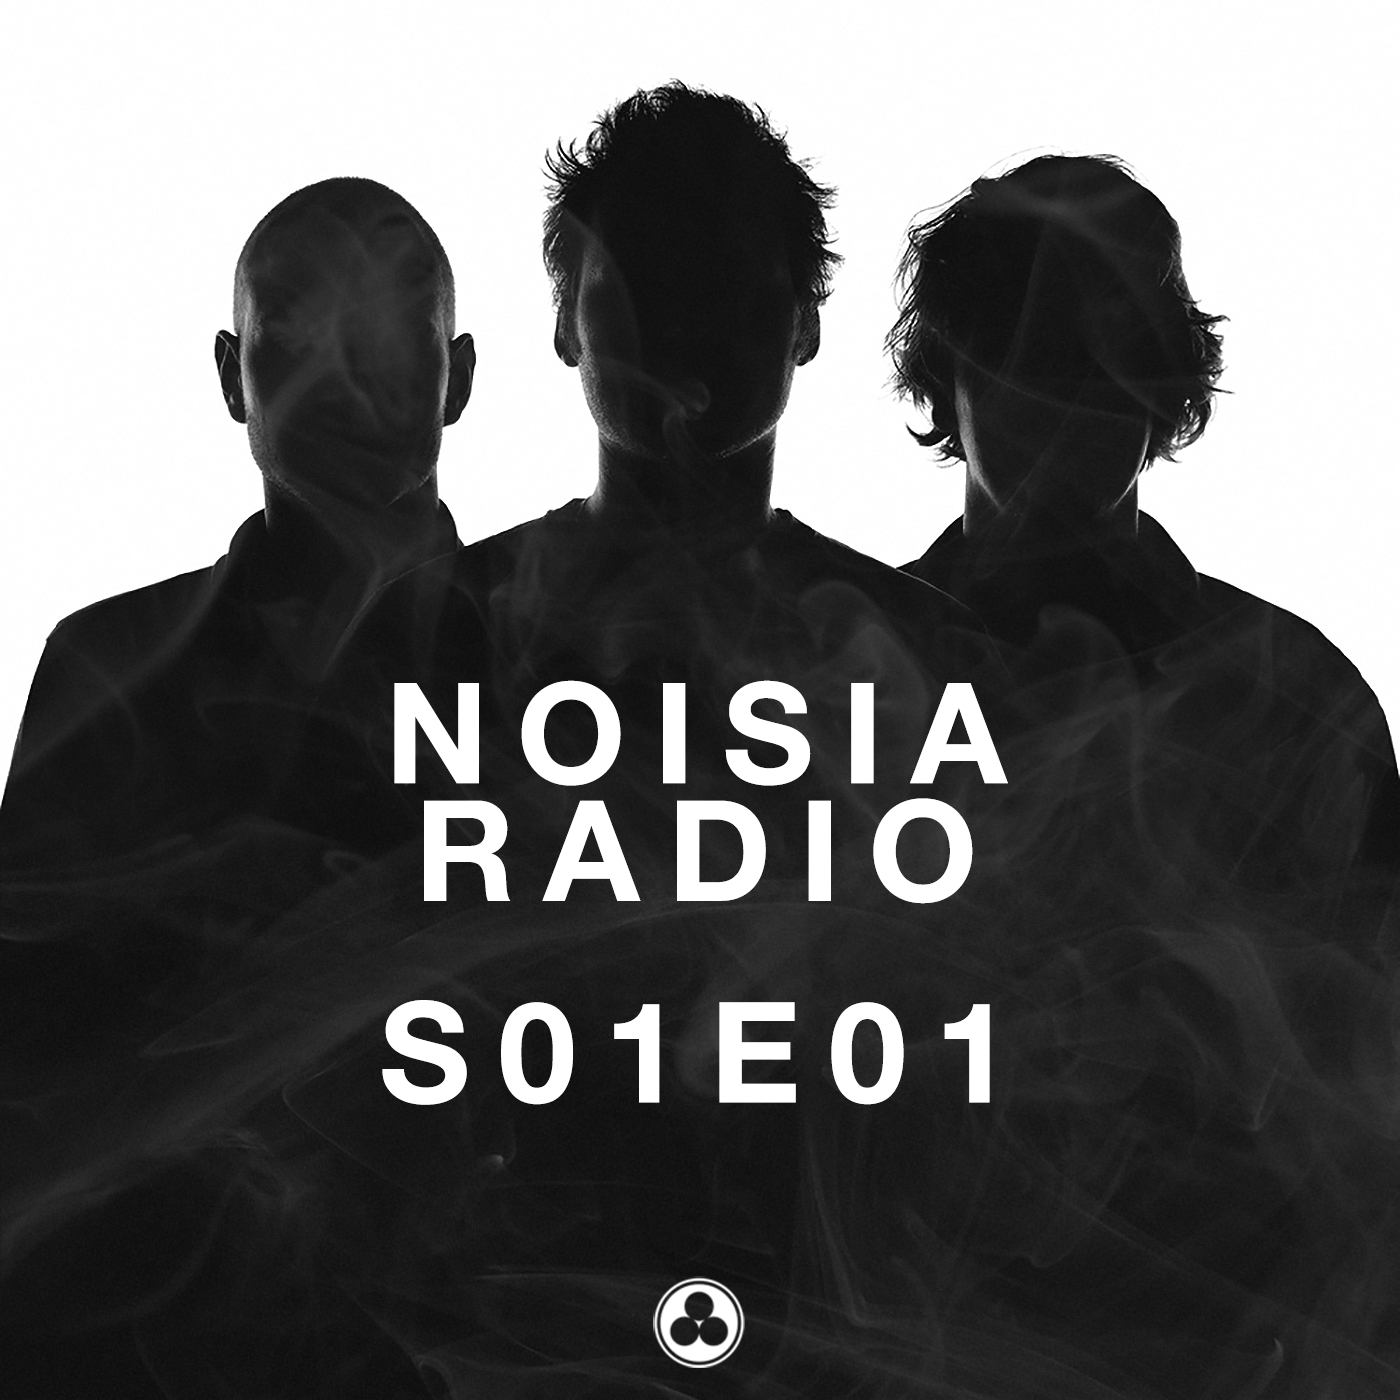 Noisia Radio S01E01